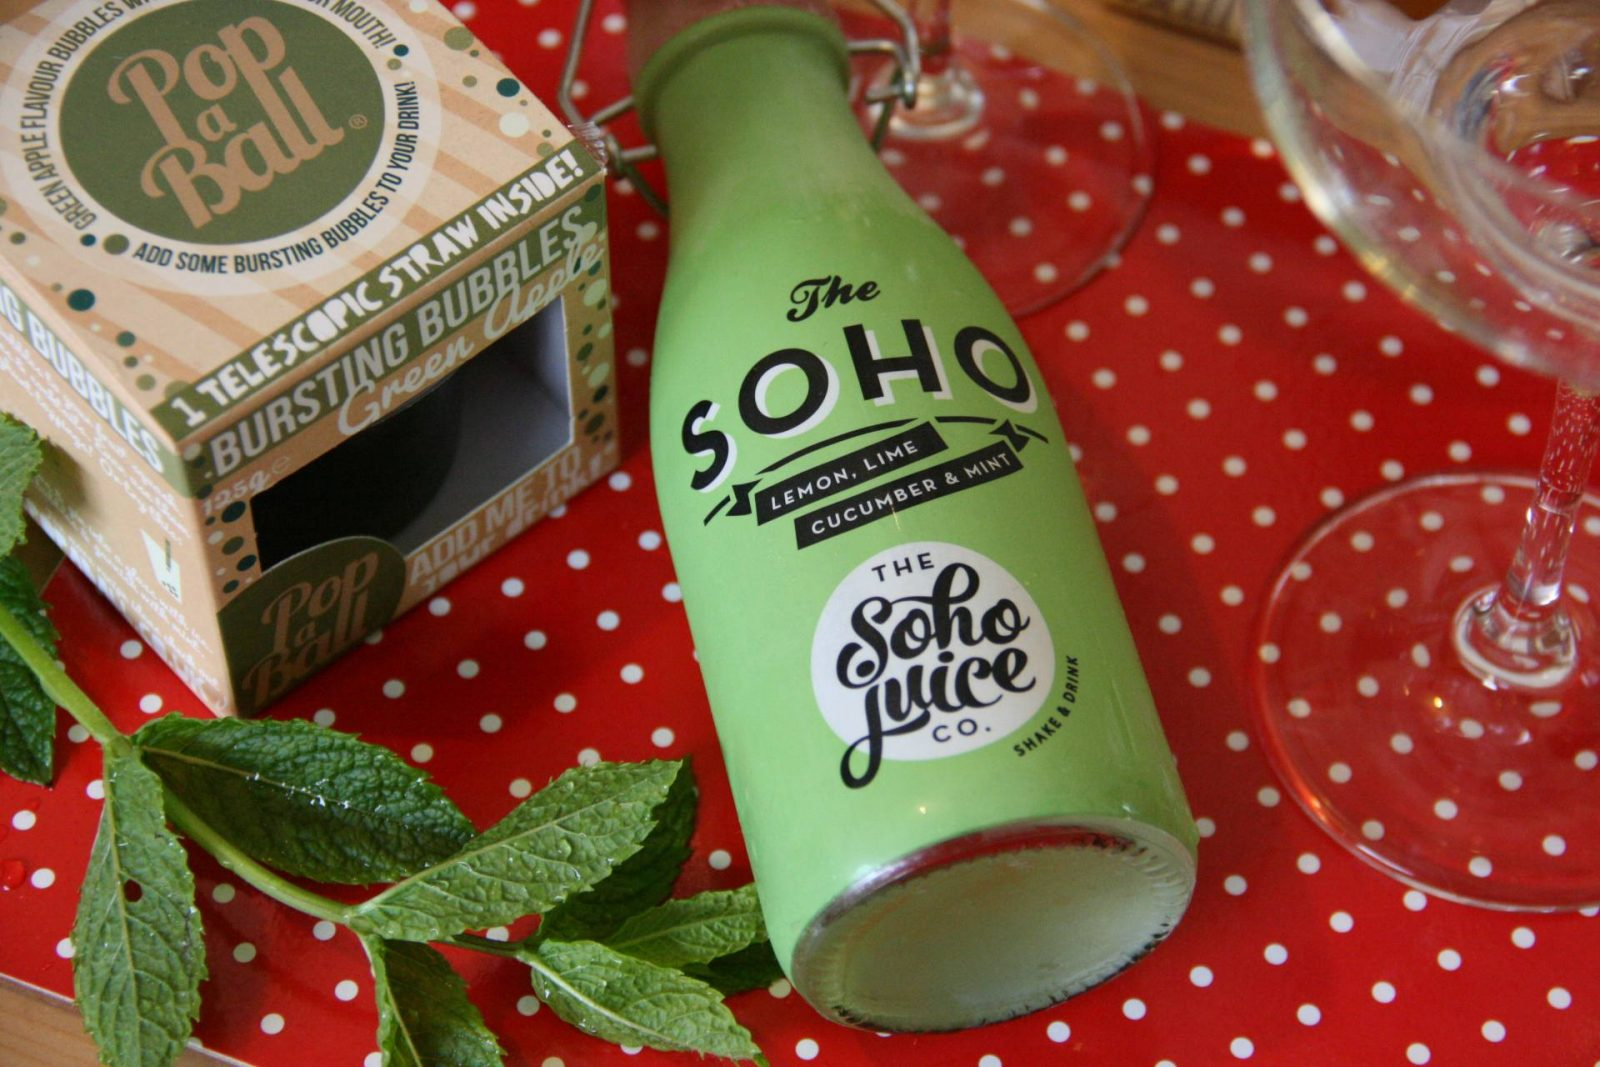 summer cocktails with the soho juice co.;